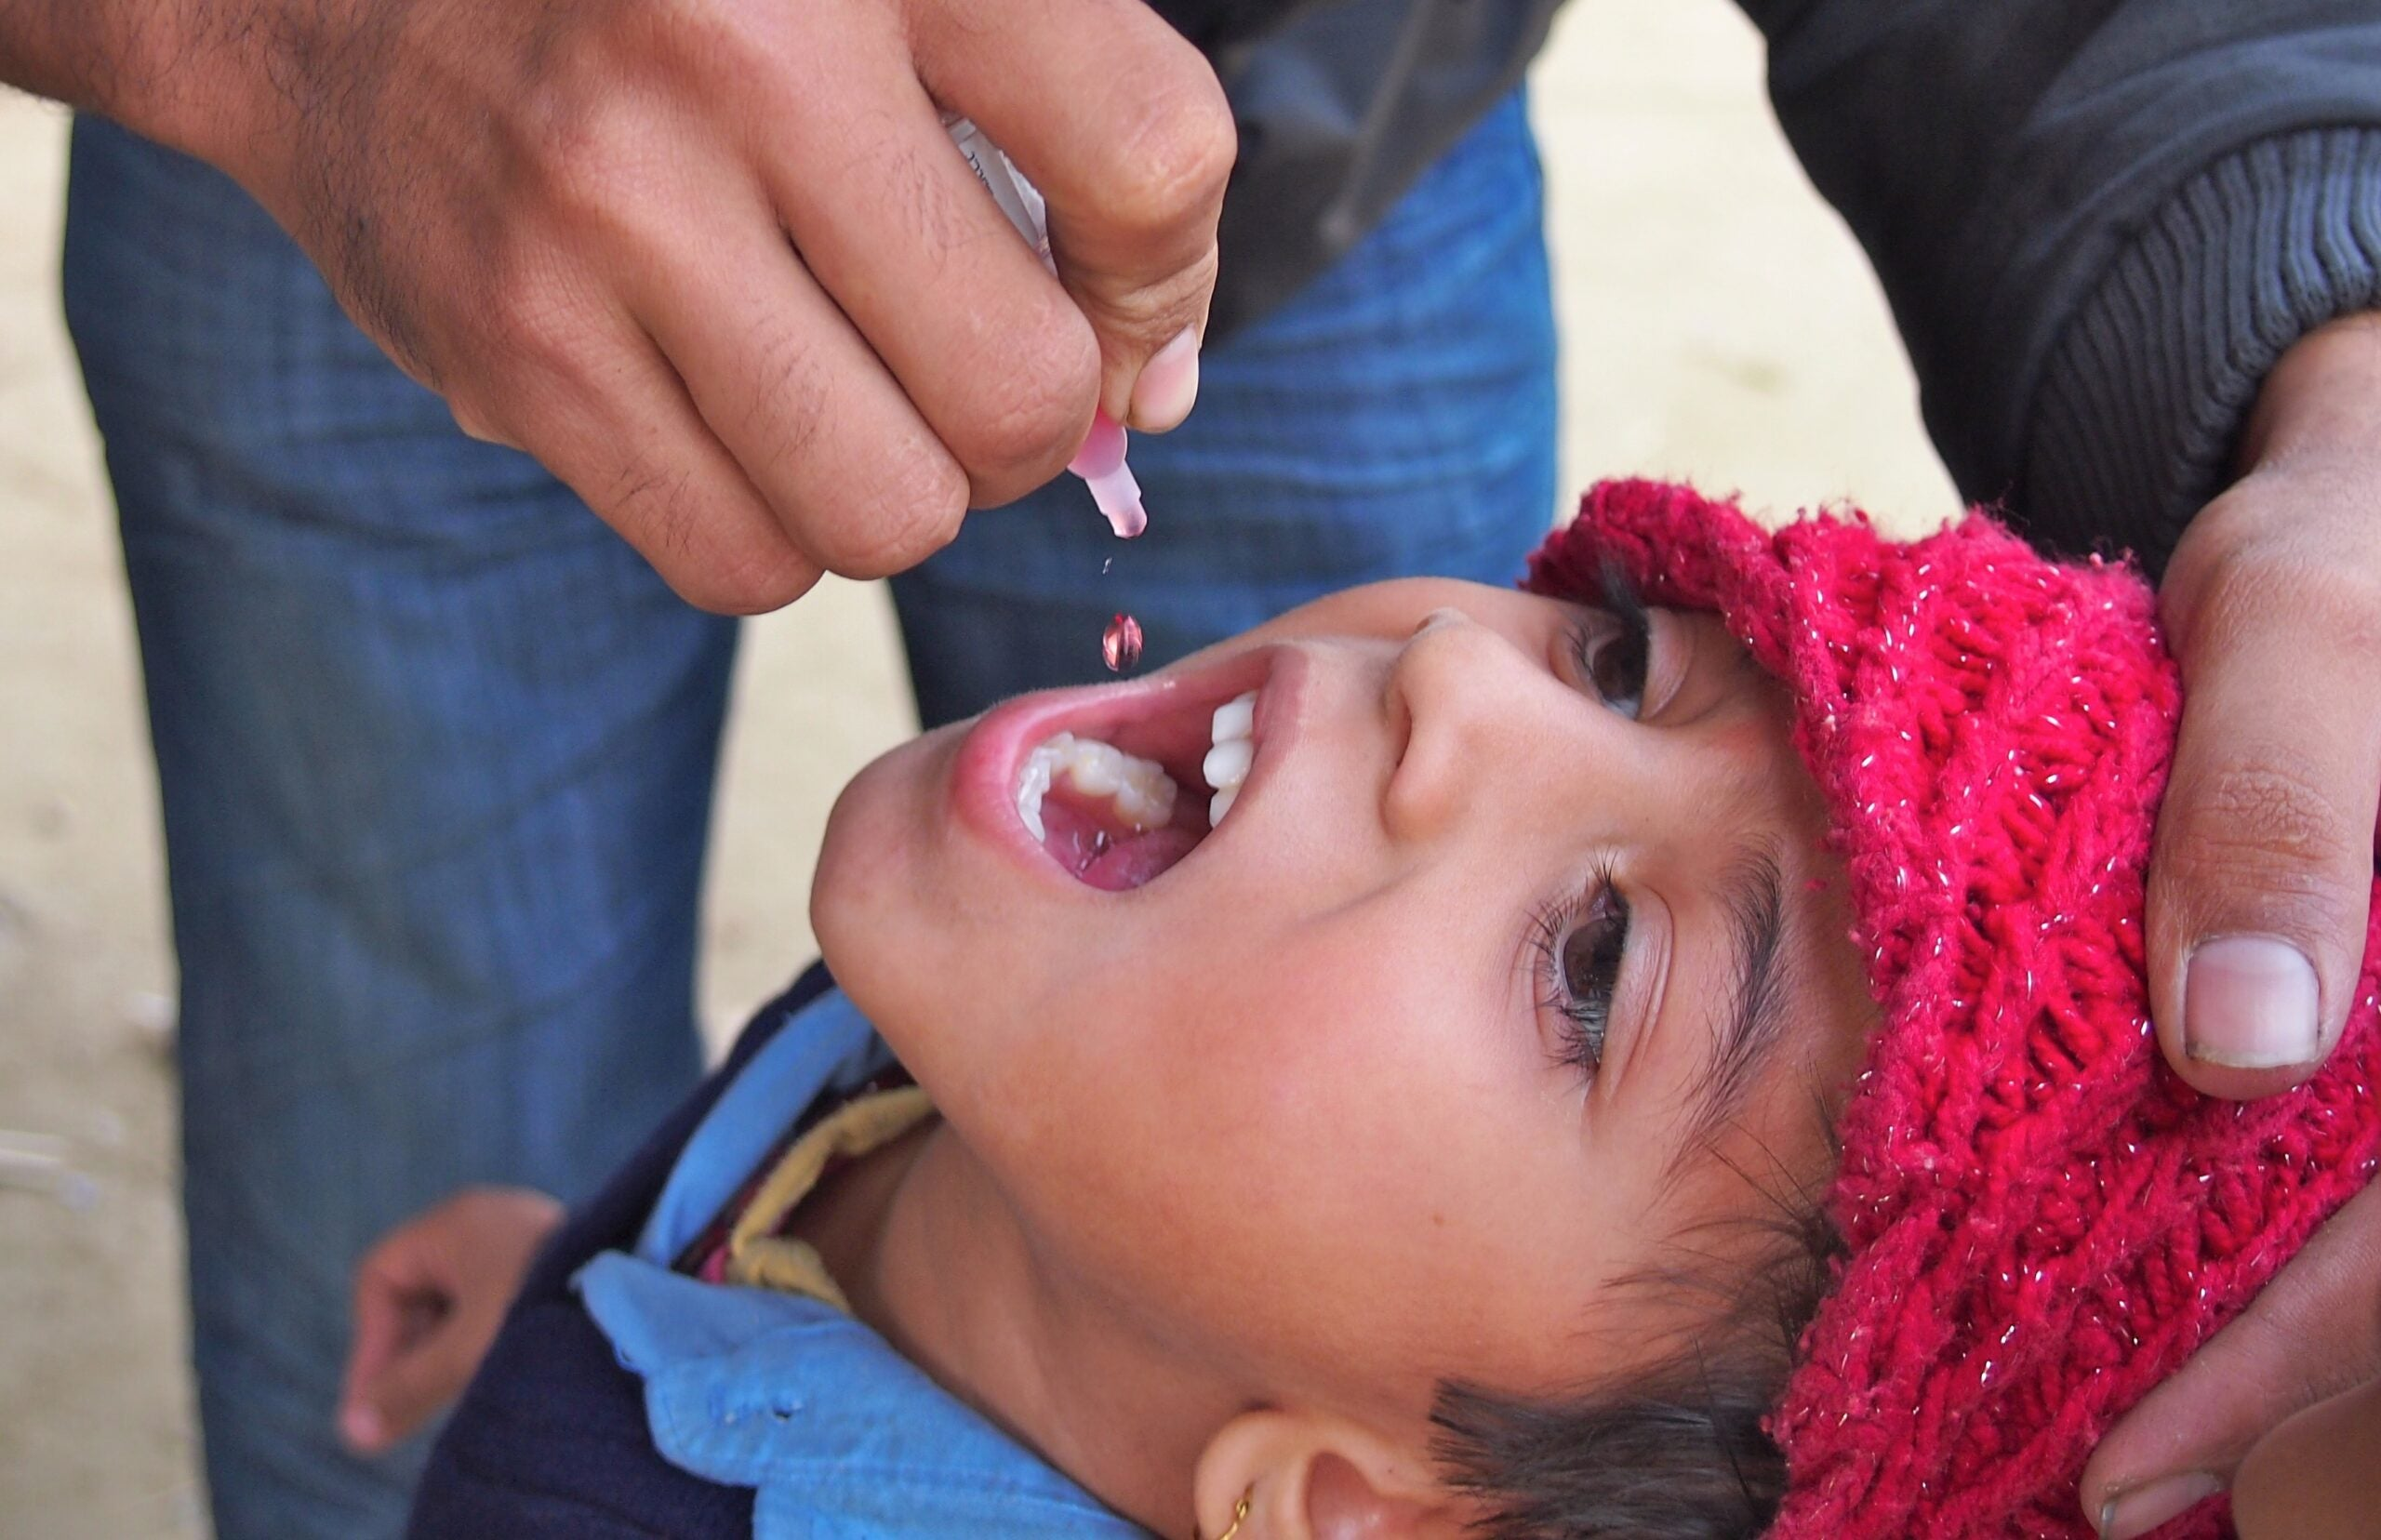 With India On Board, Southeast Asia Could Soon Be Declared Polio-Free